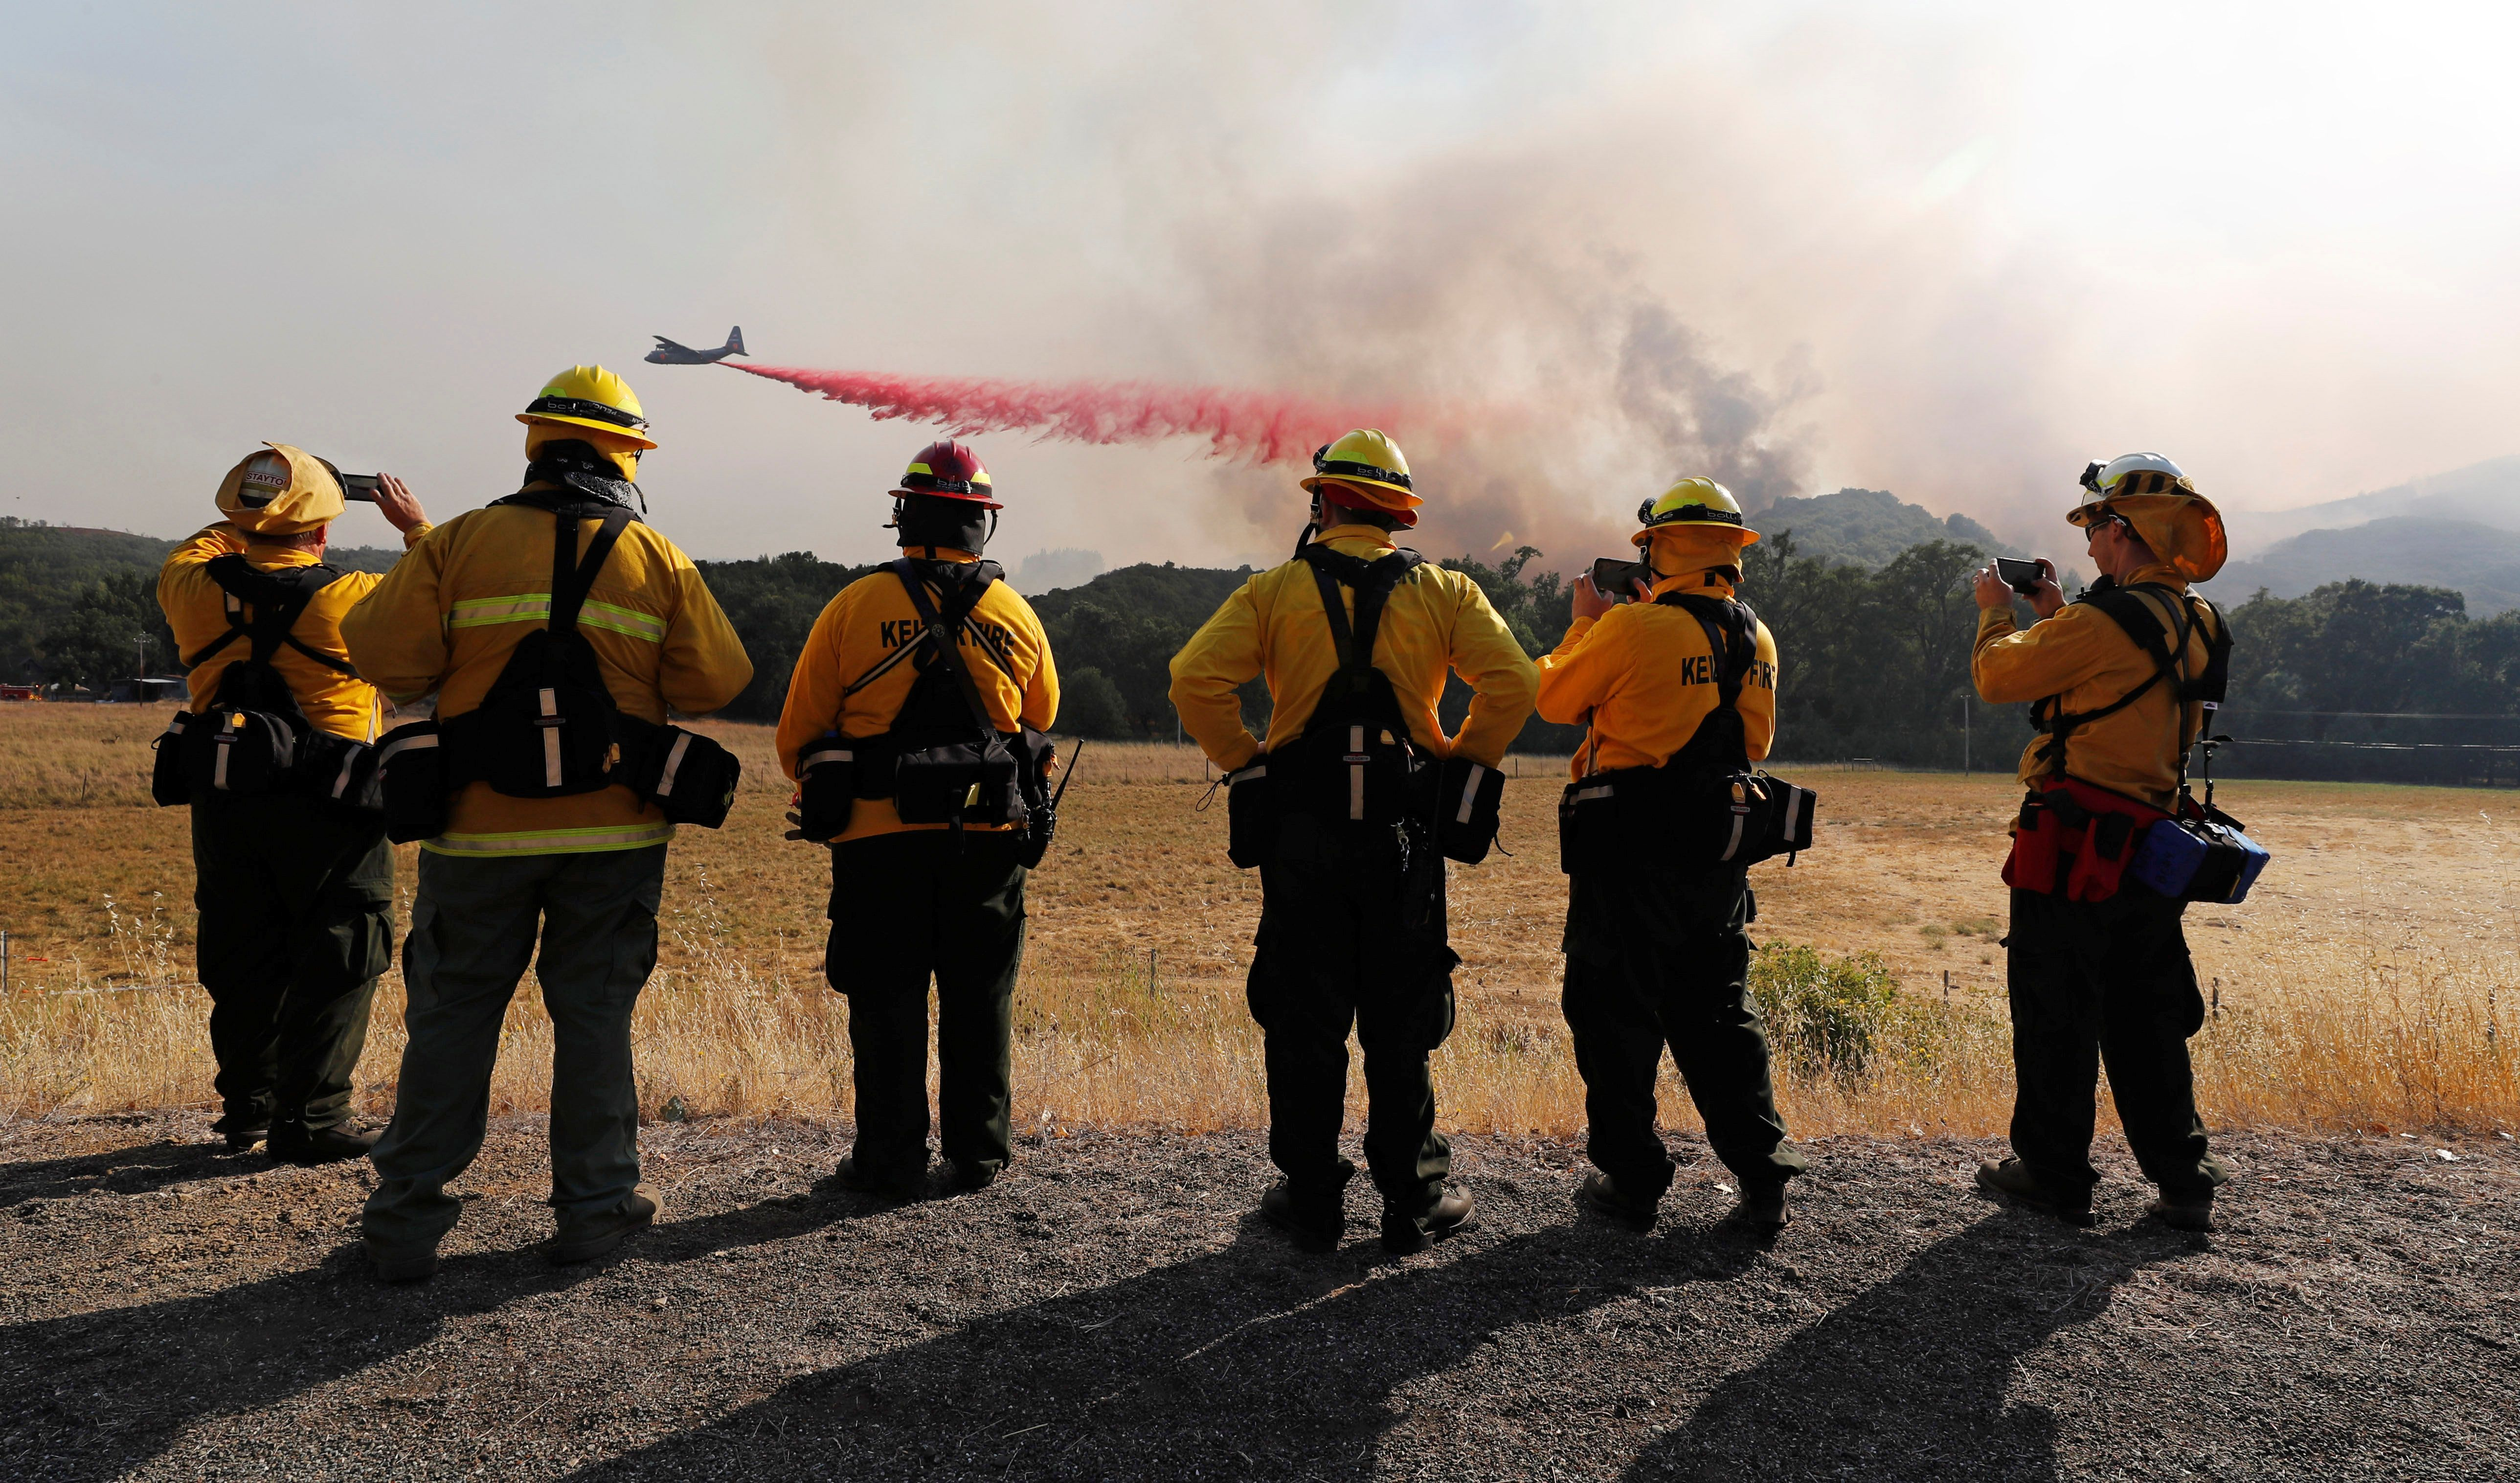 Firefighters watch as an air tanker drops fire retardant to protect homes along the crest of a hill at the River Fire (Mendocino Complex) near Lakeport, California, U.S. August 2, 2018.  REUTERS/Fred Greaves